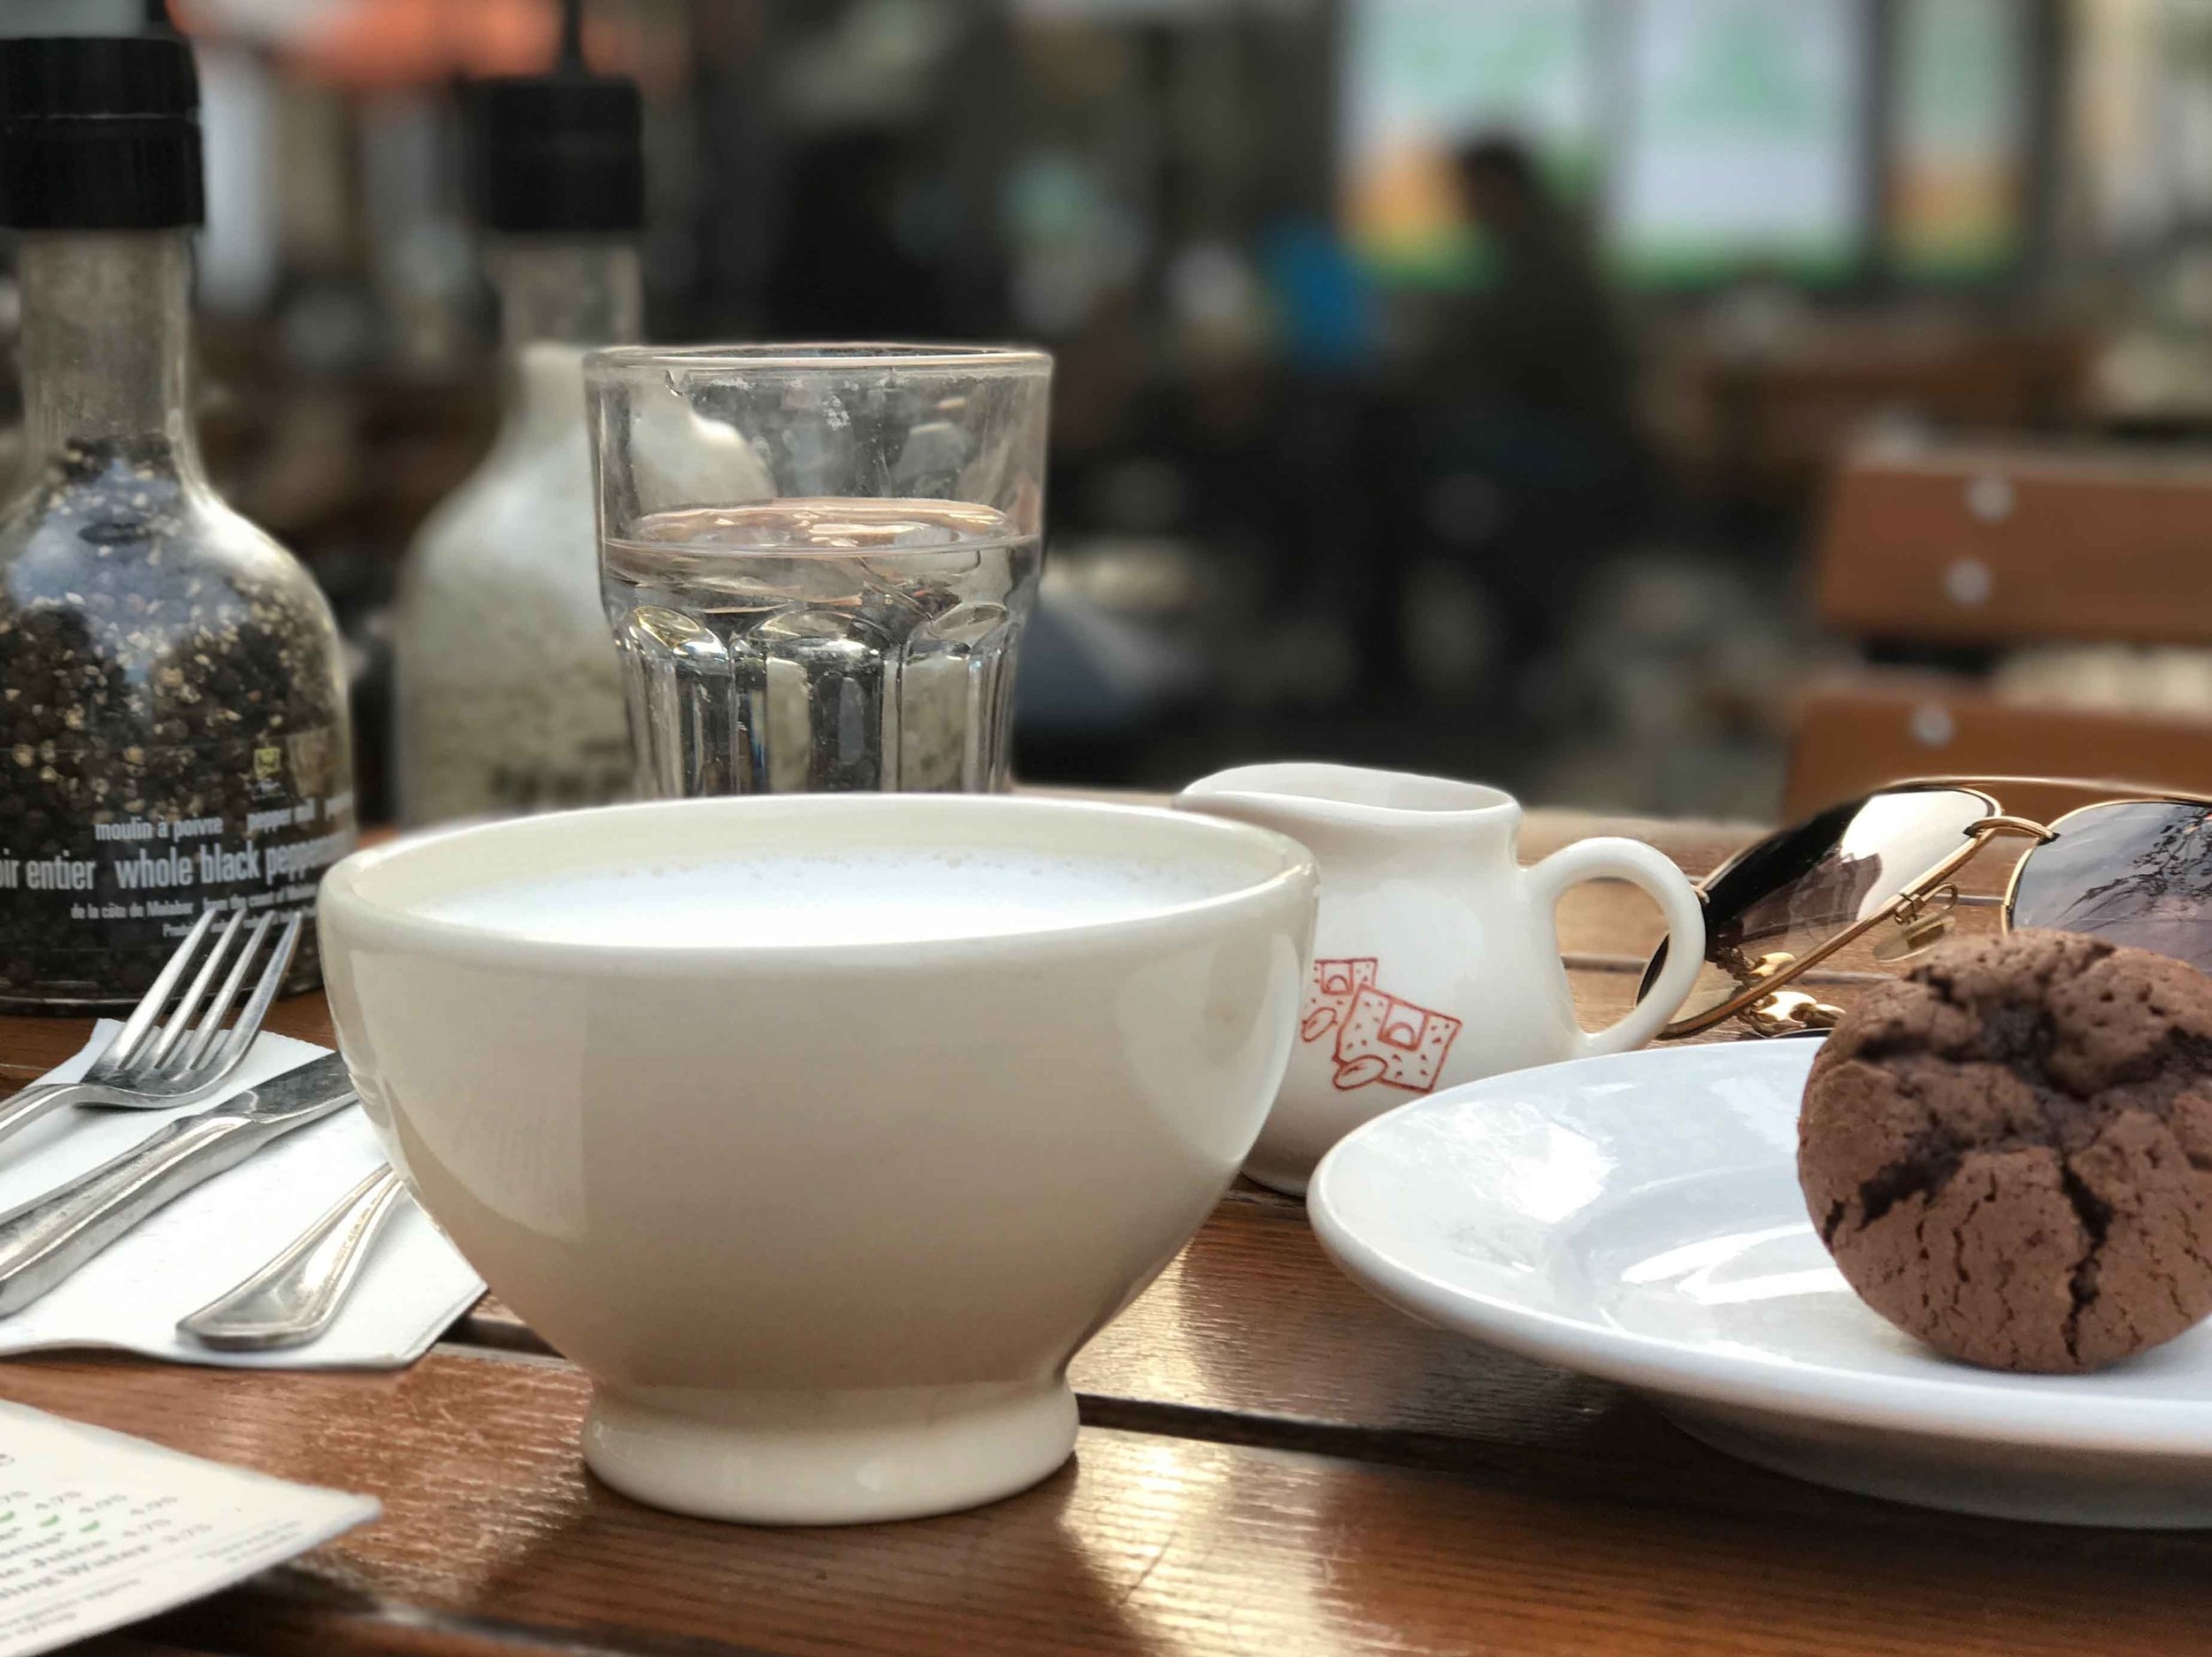 Le Pain Quotidien, hot chocolate bowl, chocolate muffin. Image©thingstodot.com